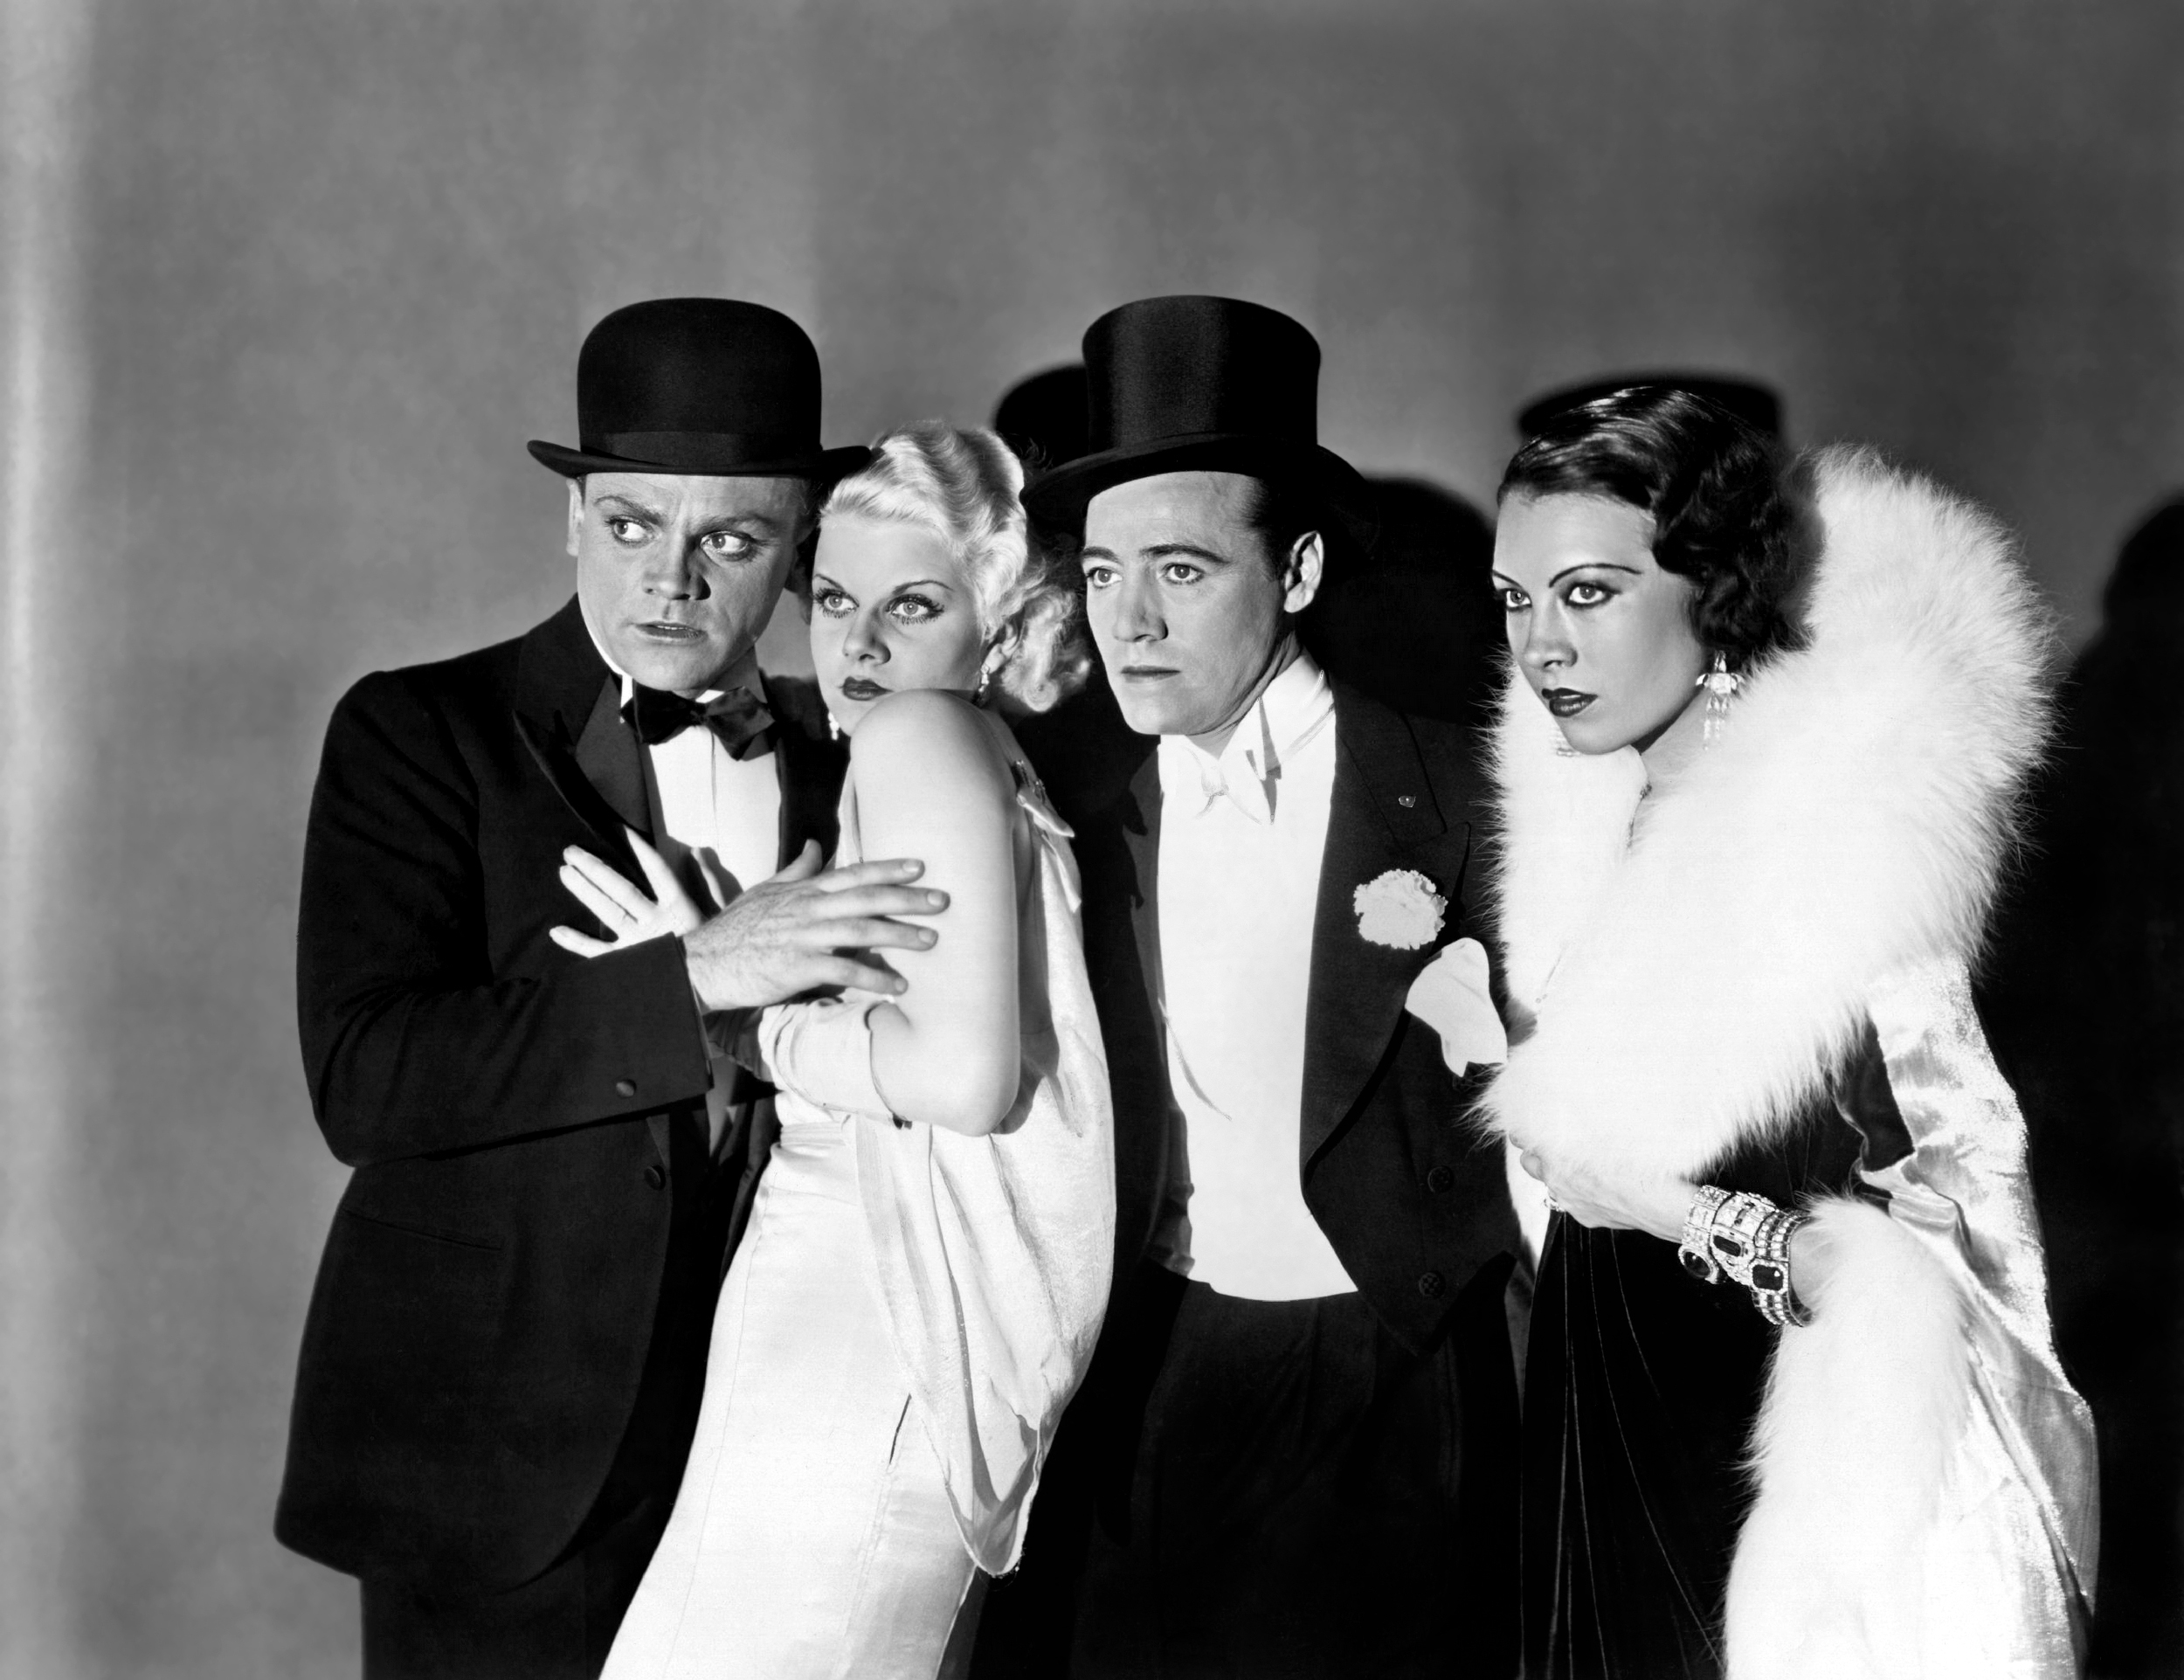 Jean Harlow in The Public Enemy with (L to R) James Cagney, Jean Harlow, Leslie Fenton, Dorothy Gee